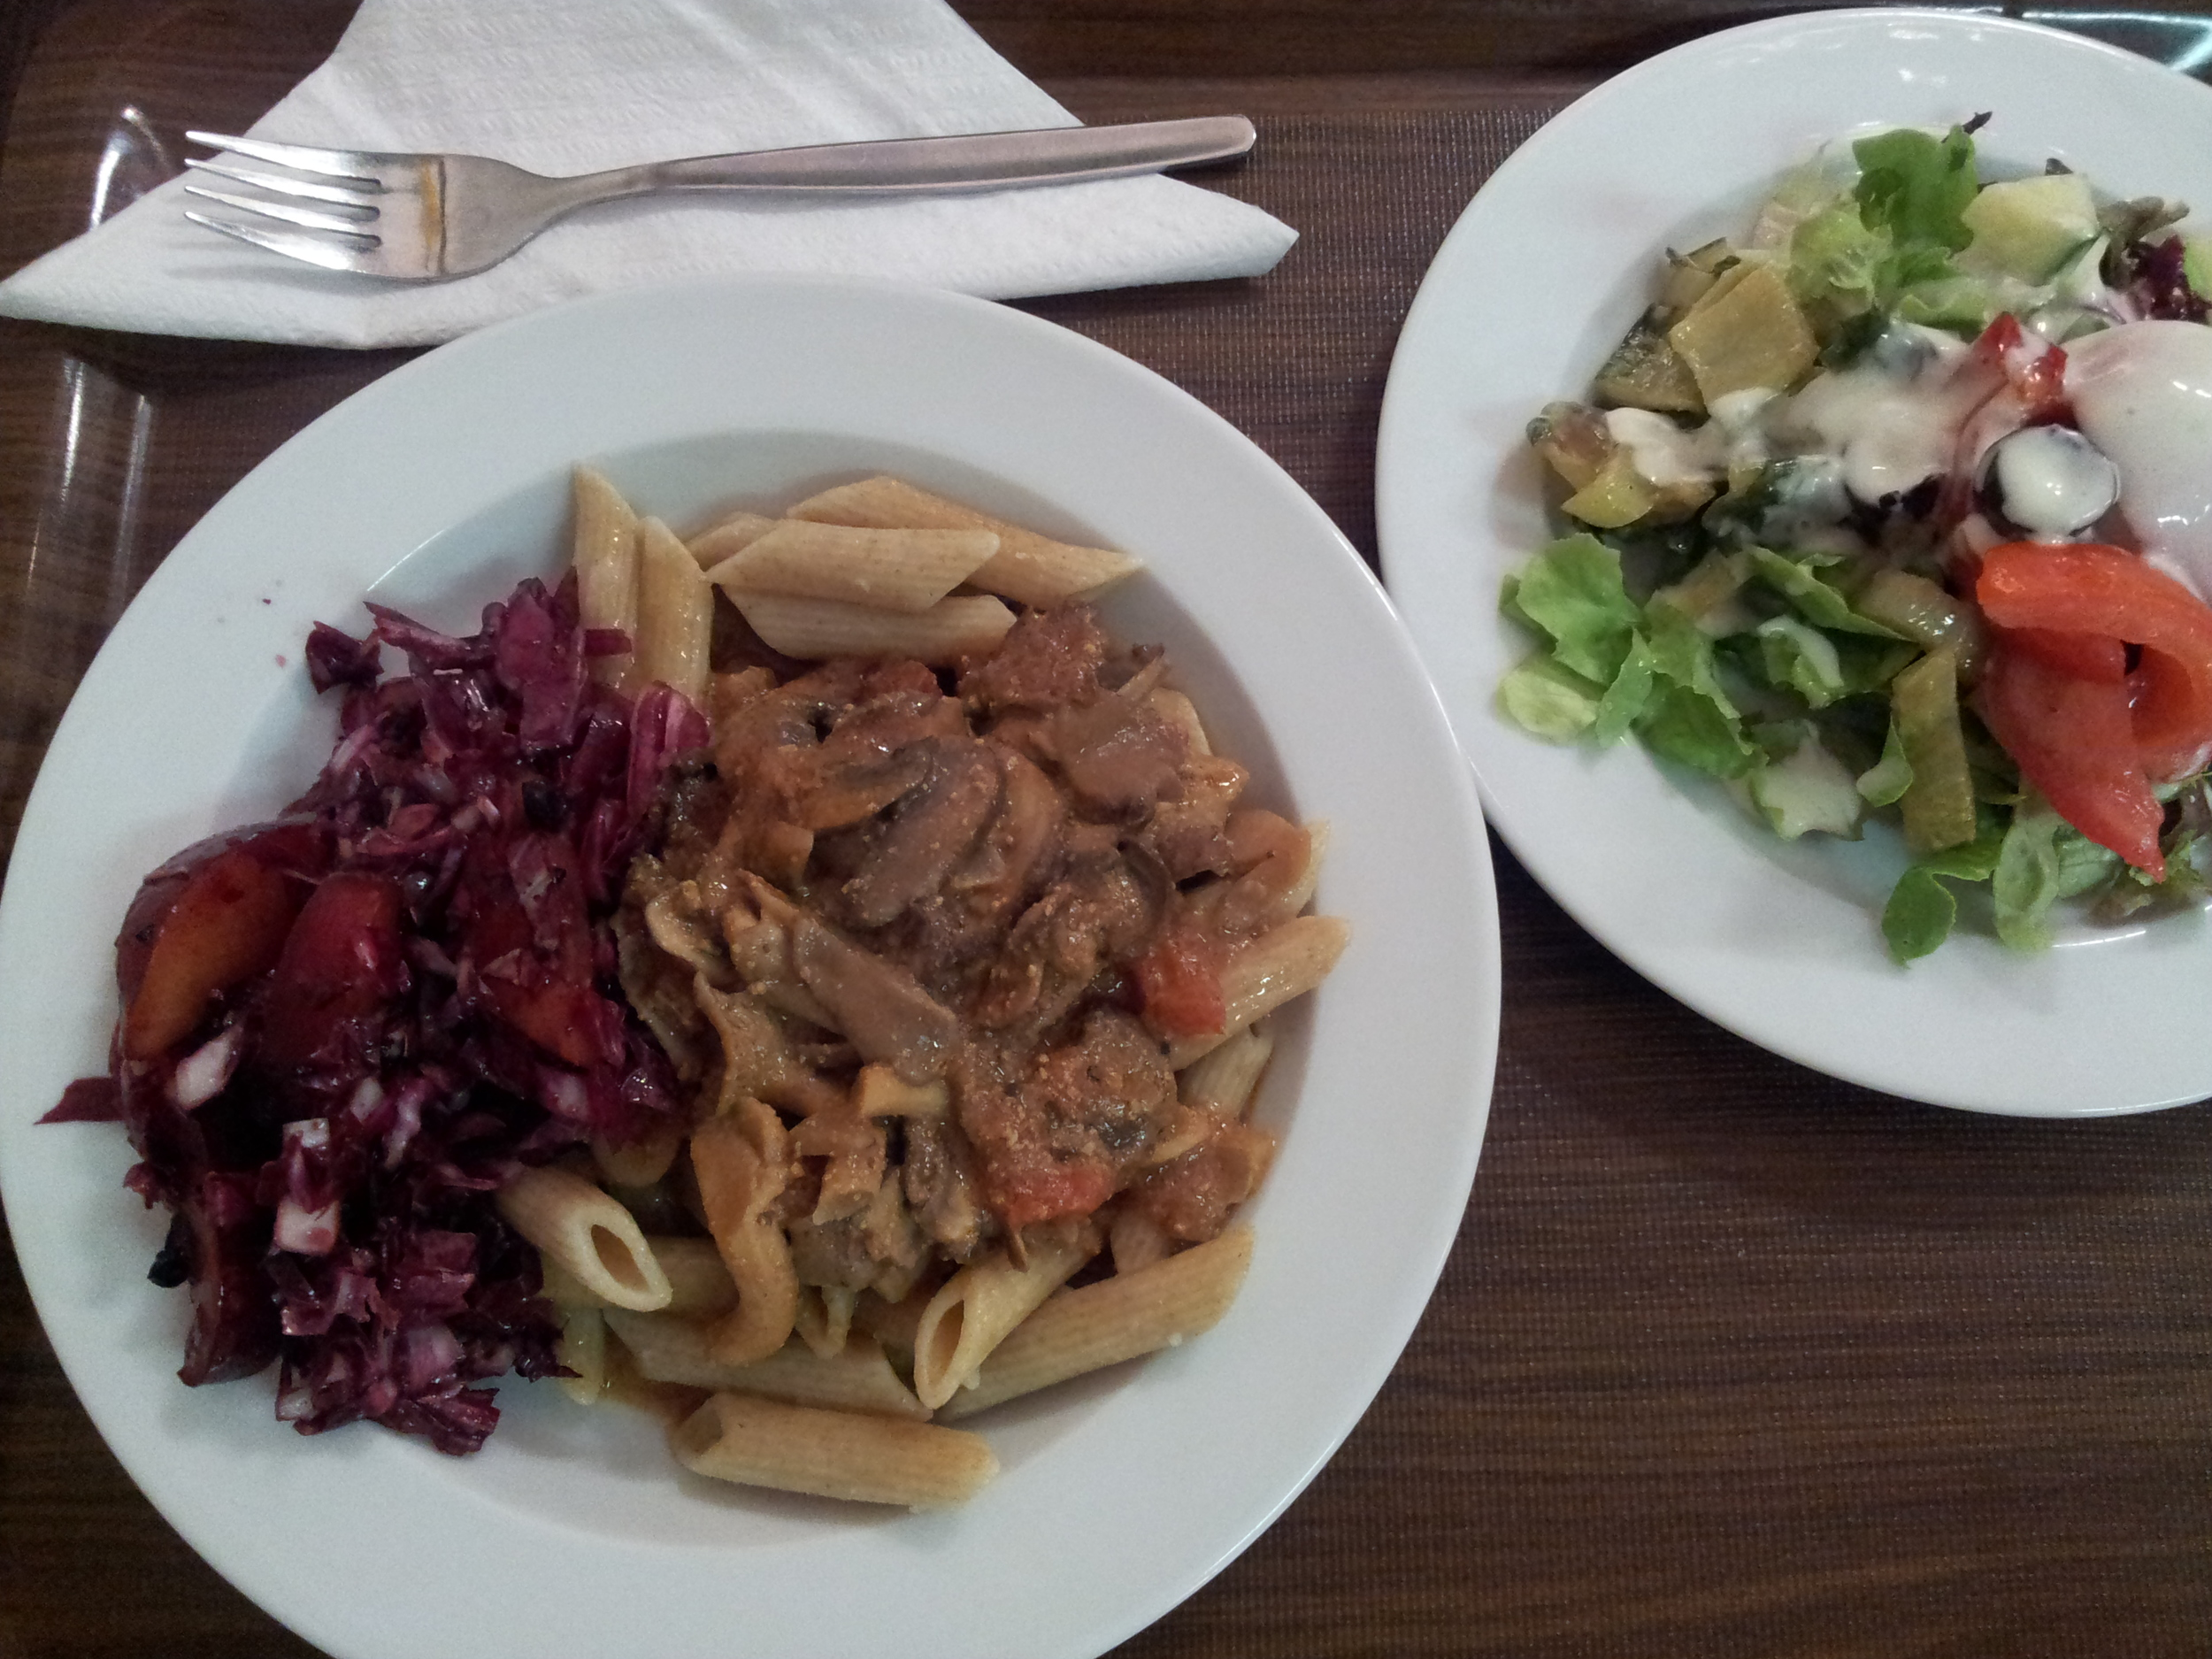 Another tasty and interesting lunch at the Biokeller- Bistro with Raddichio and Plums!